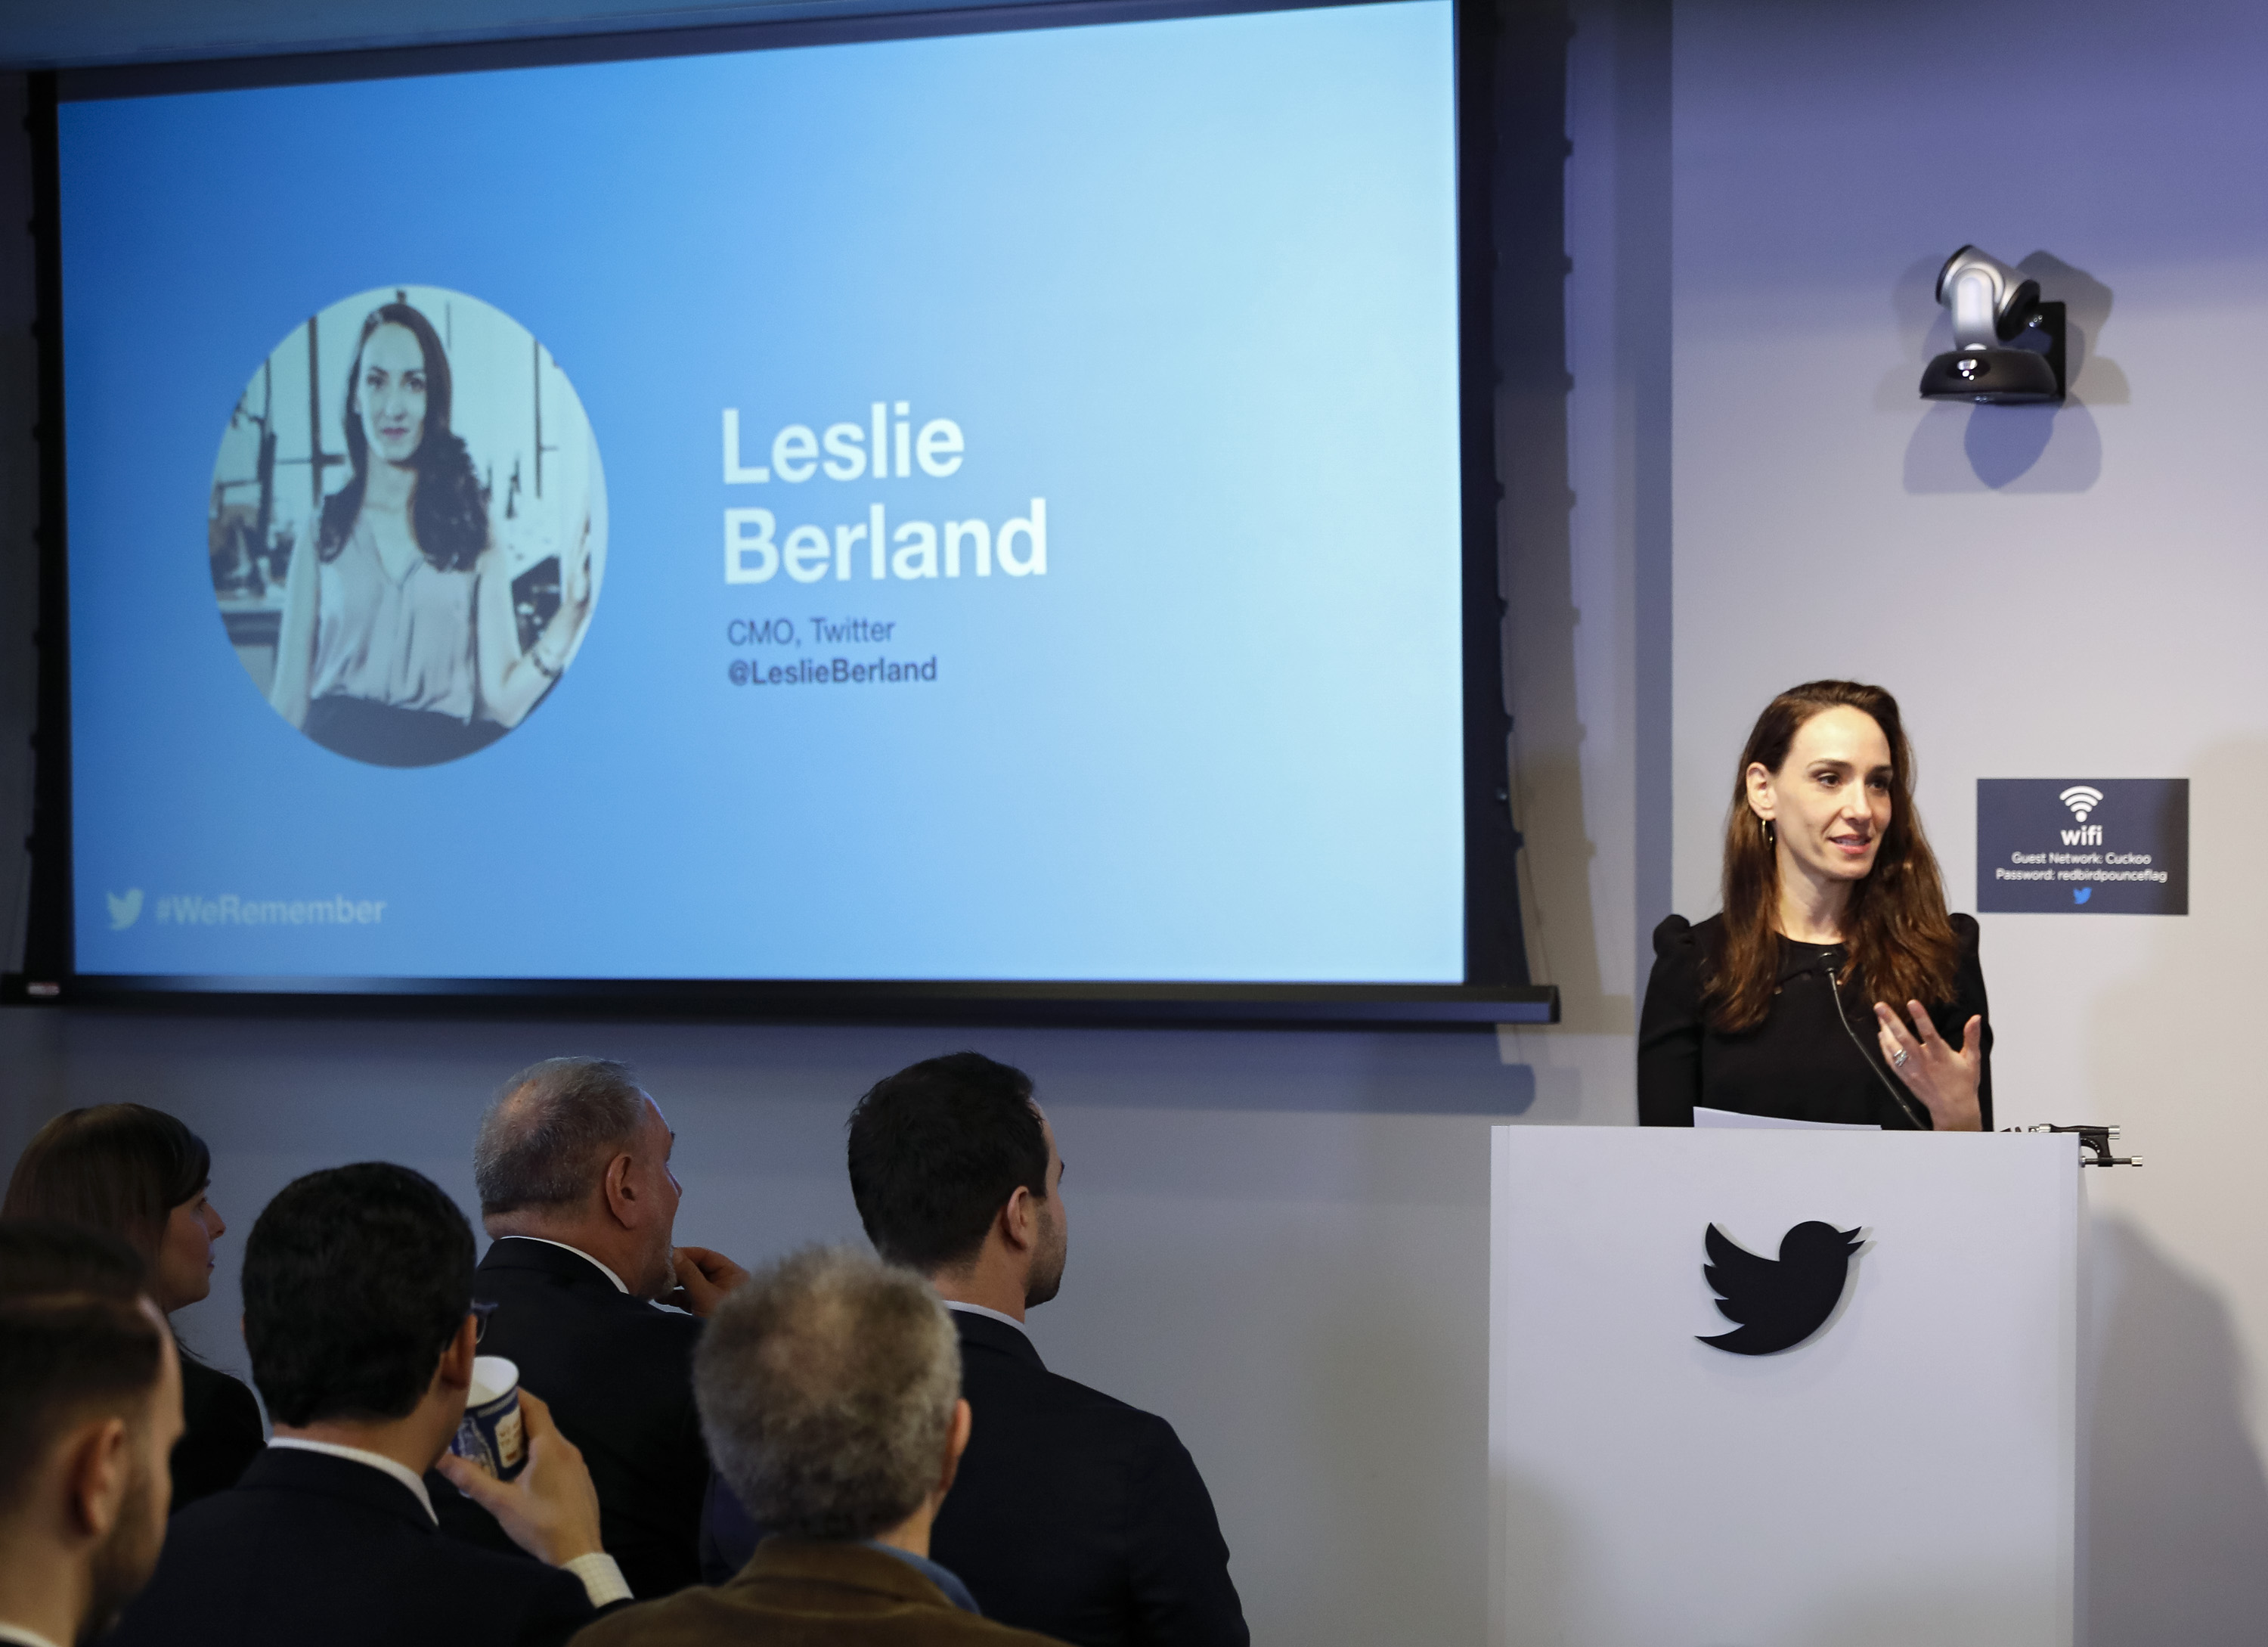 Twitter CMO and Head of People Leslie Berland (c) Shahar Azran / World Jewish Congress